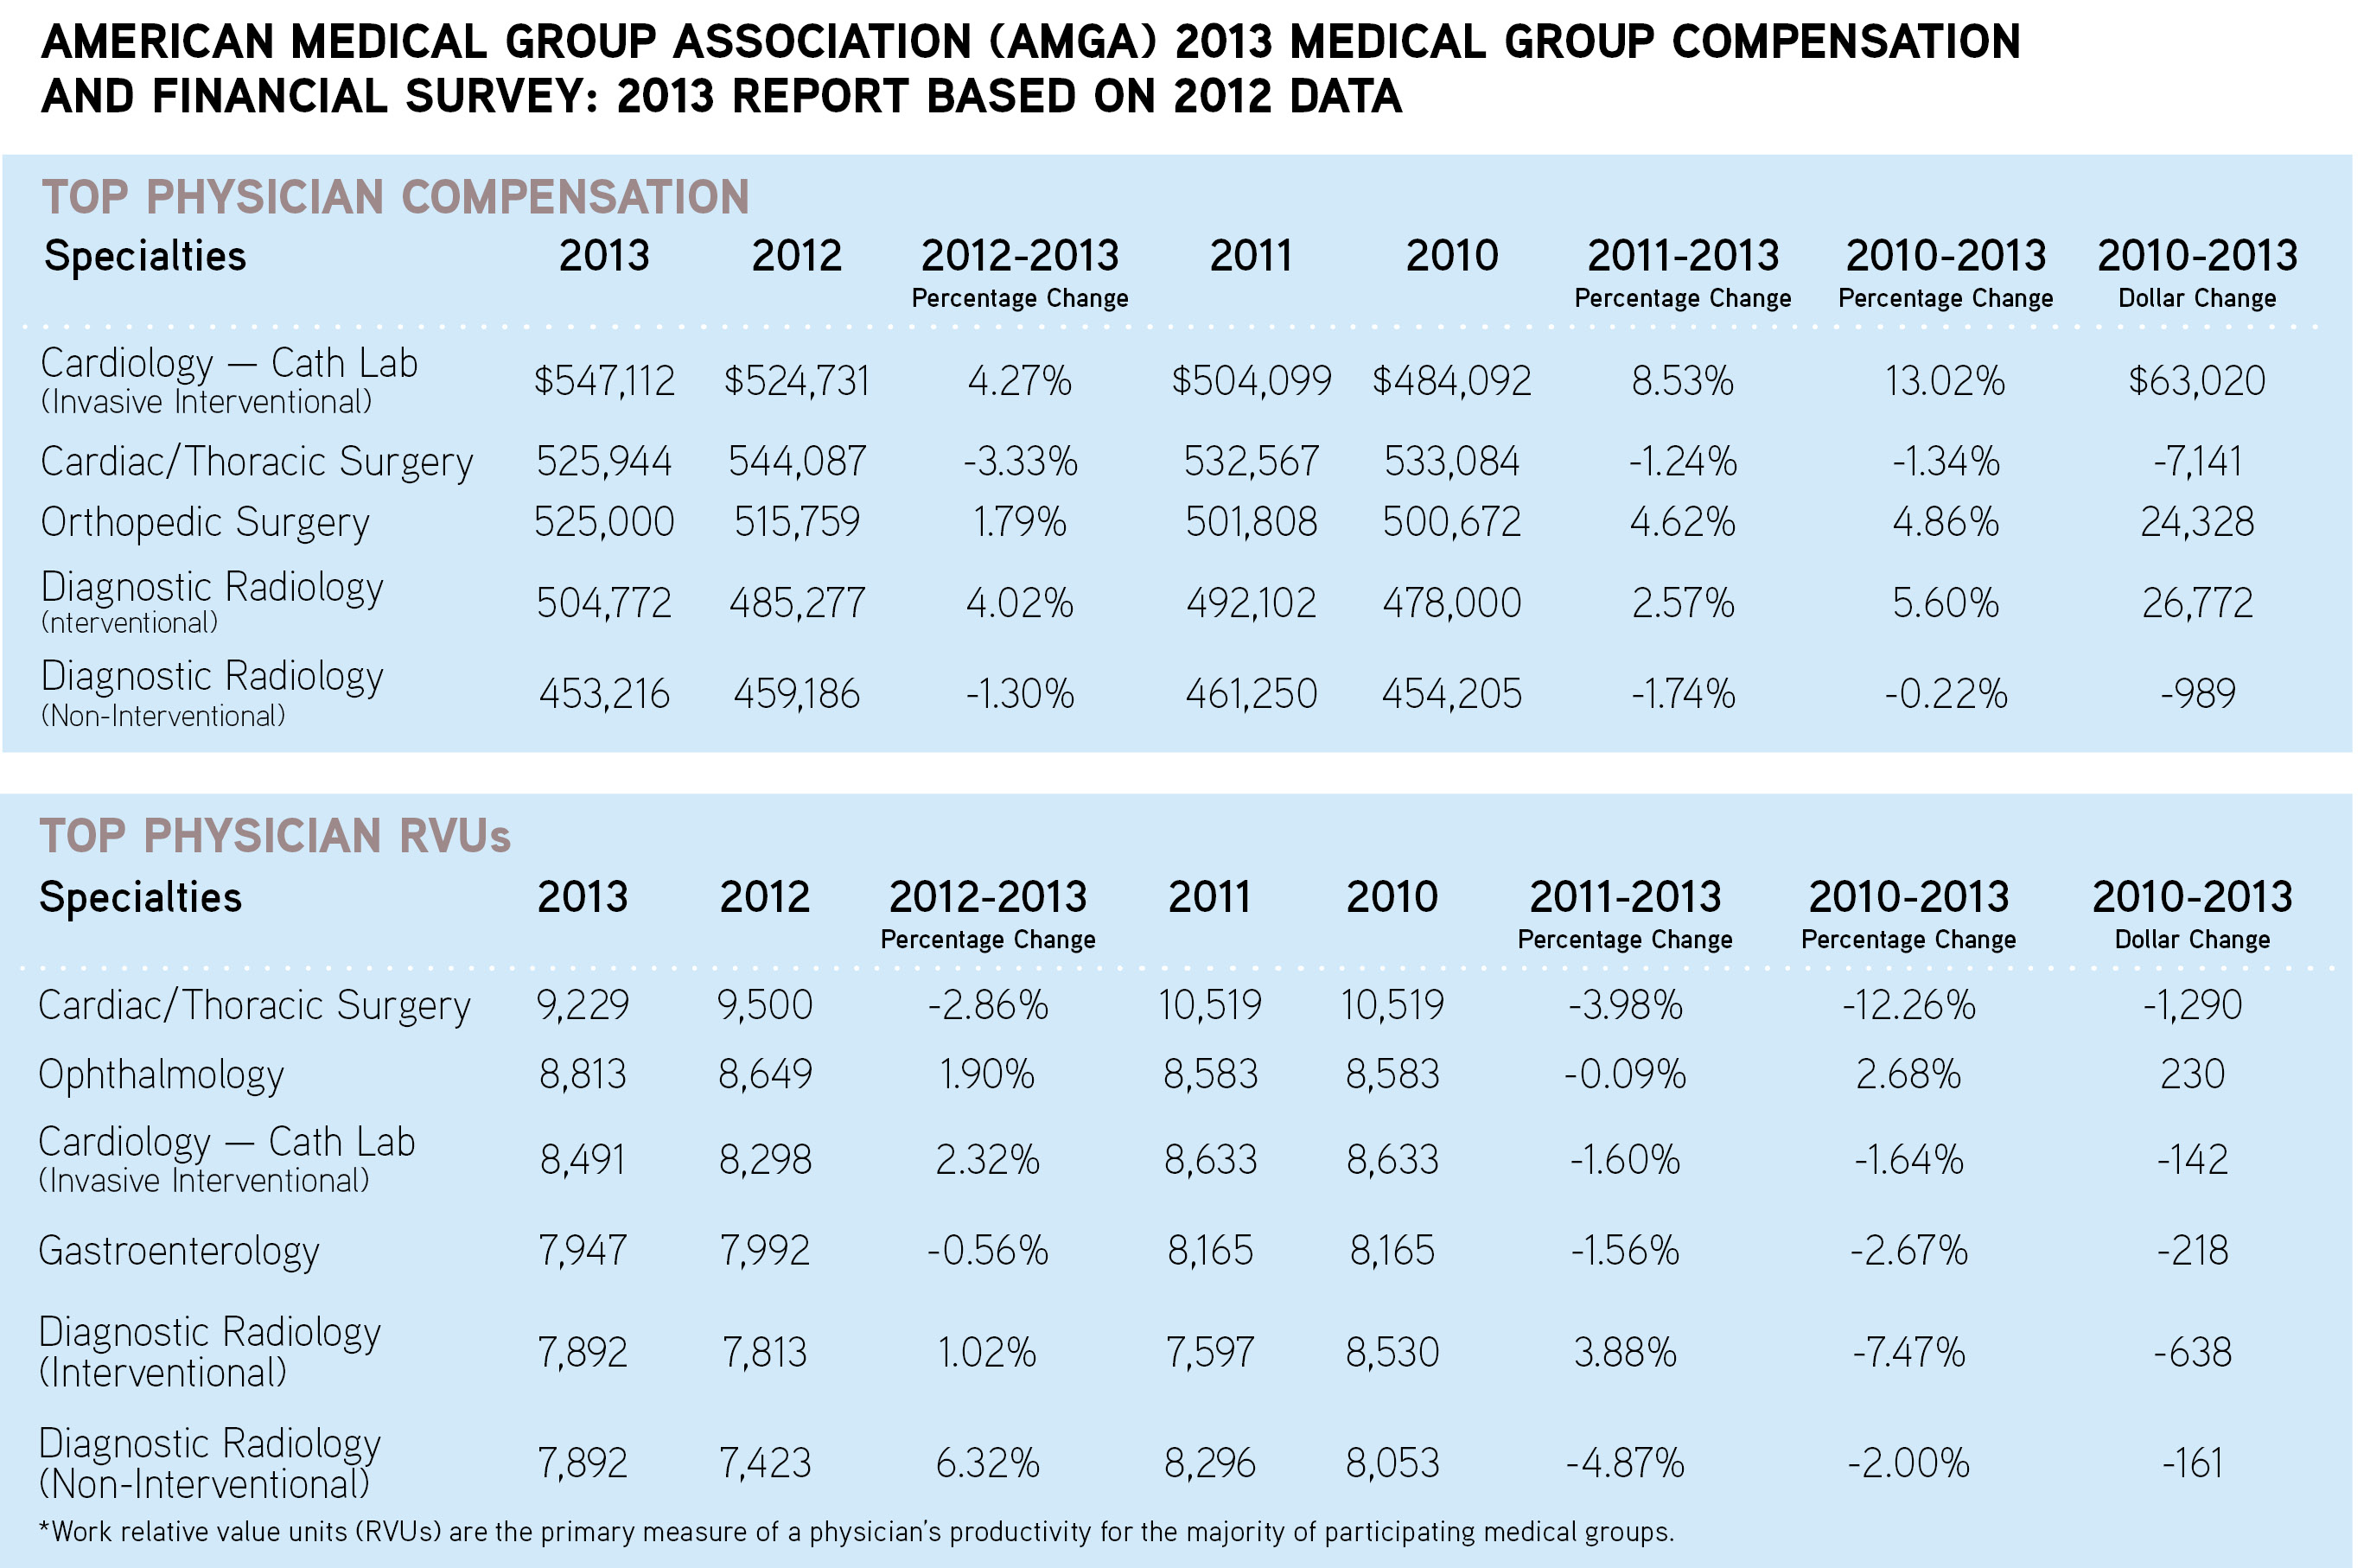 Mgma physician compensation 2014